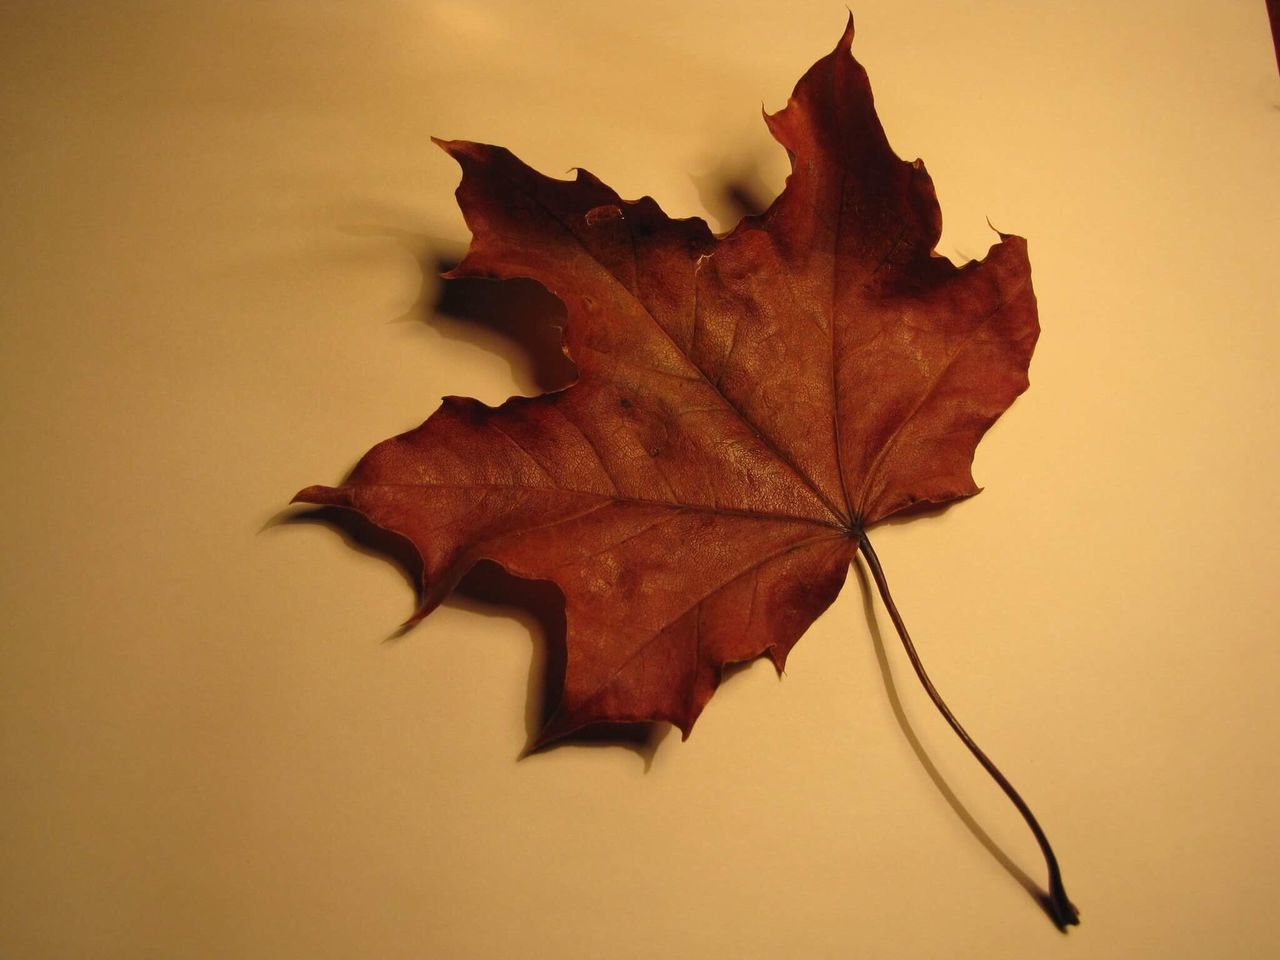 autumn, leaf, maple, change, dry, maple leaf, close-up, fallen, no people, nature, day, white background, outdoors, fragility, beauty in nature